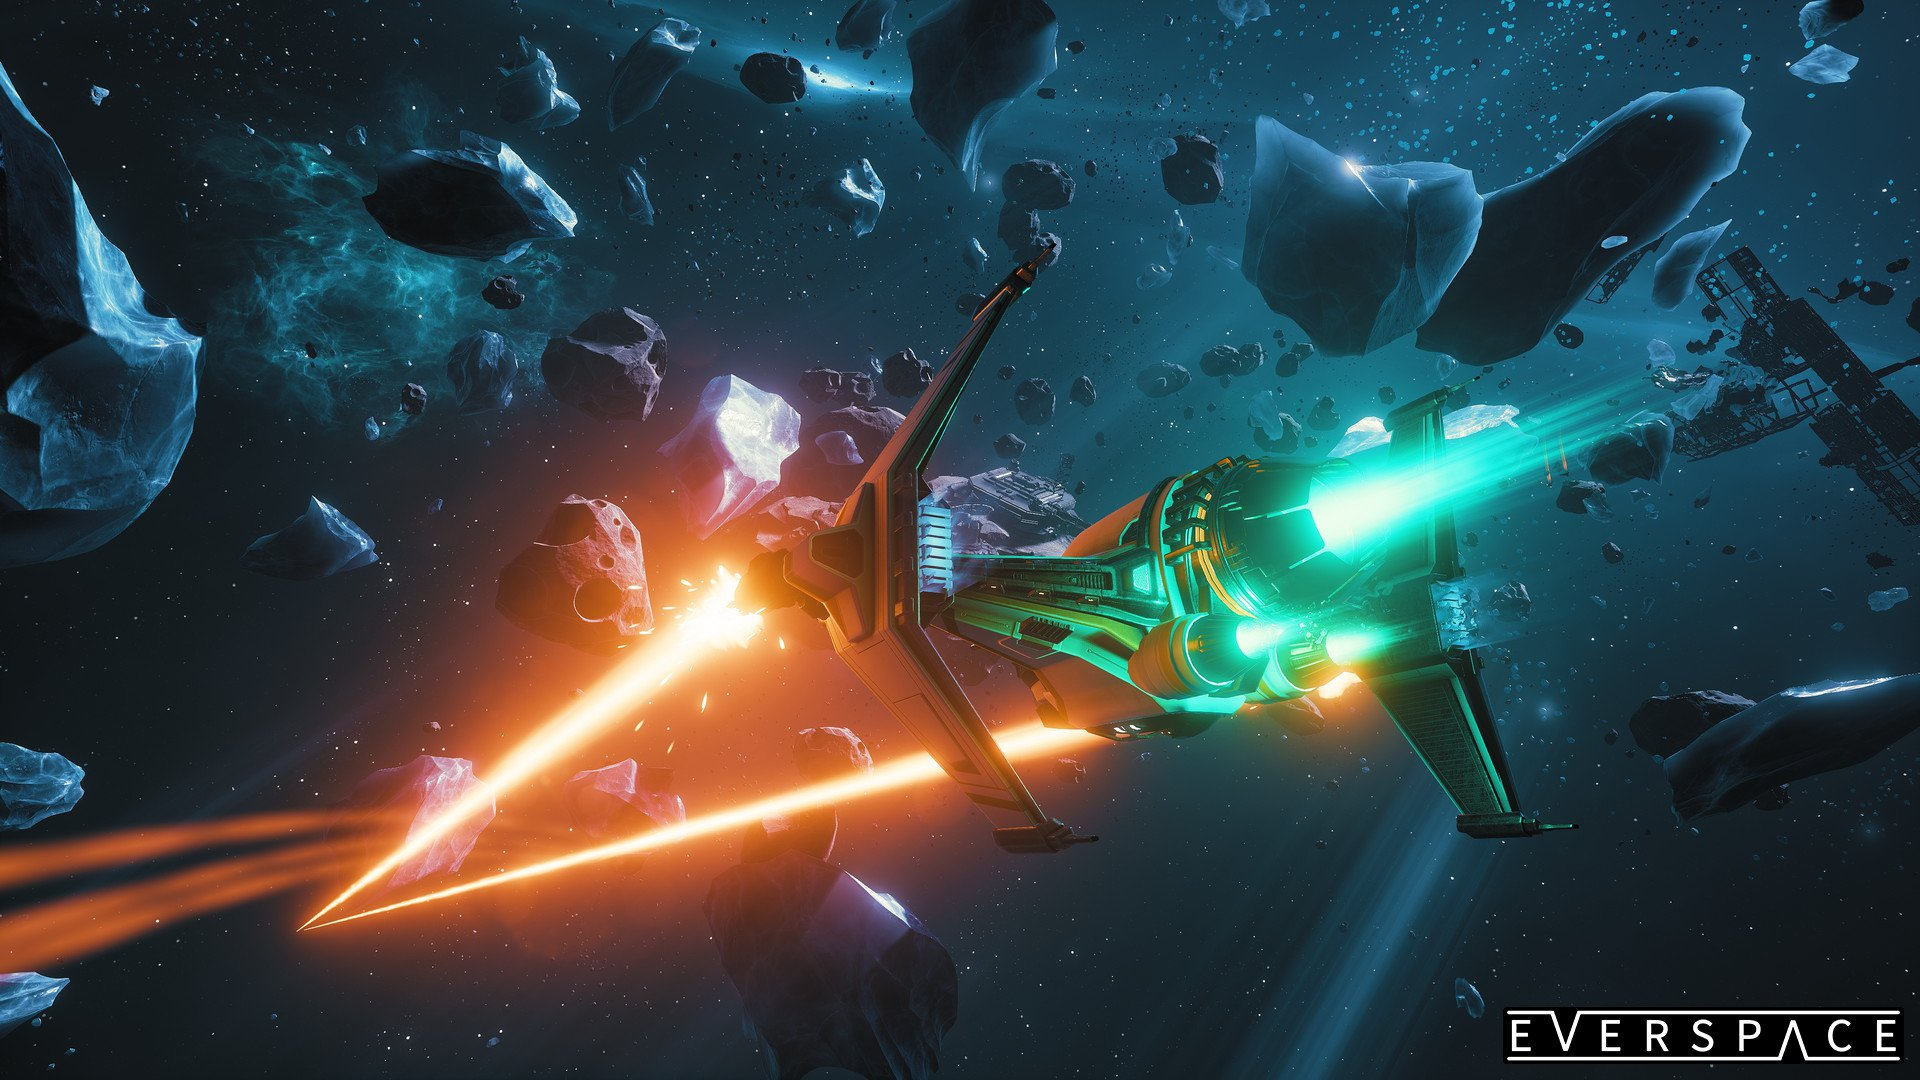 Everspace 11